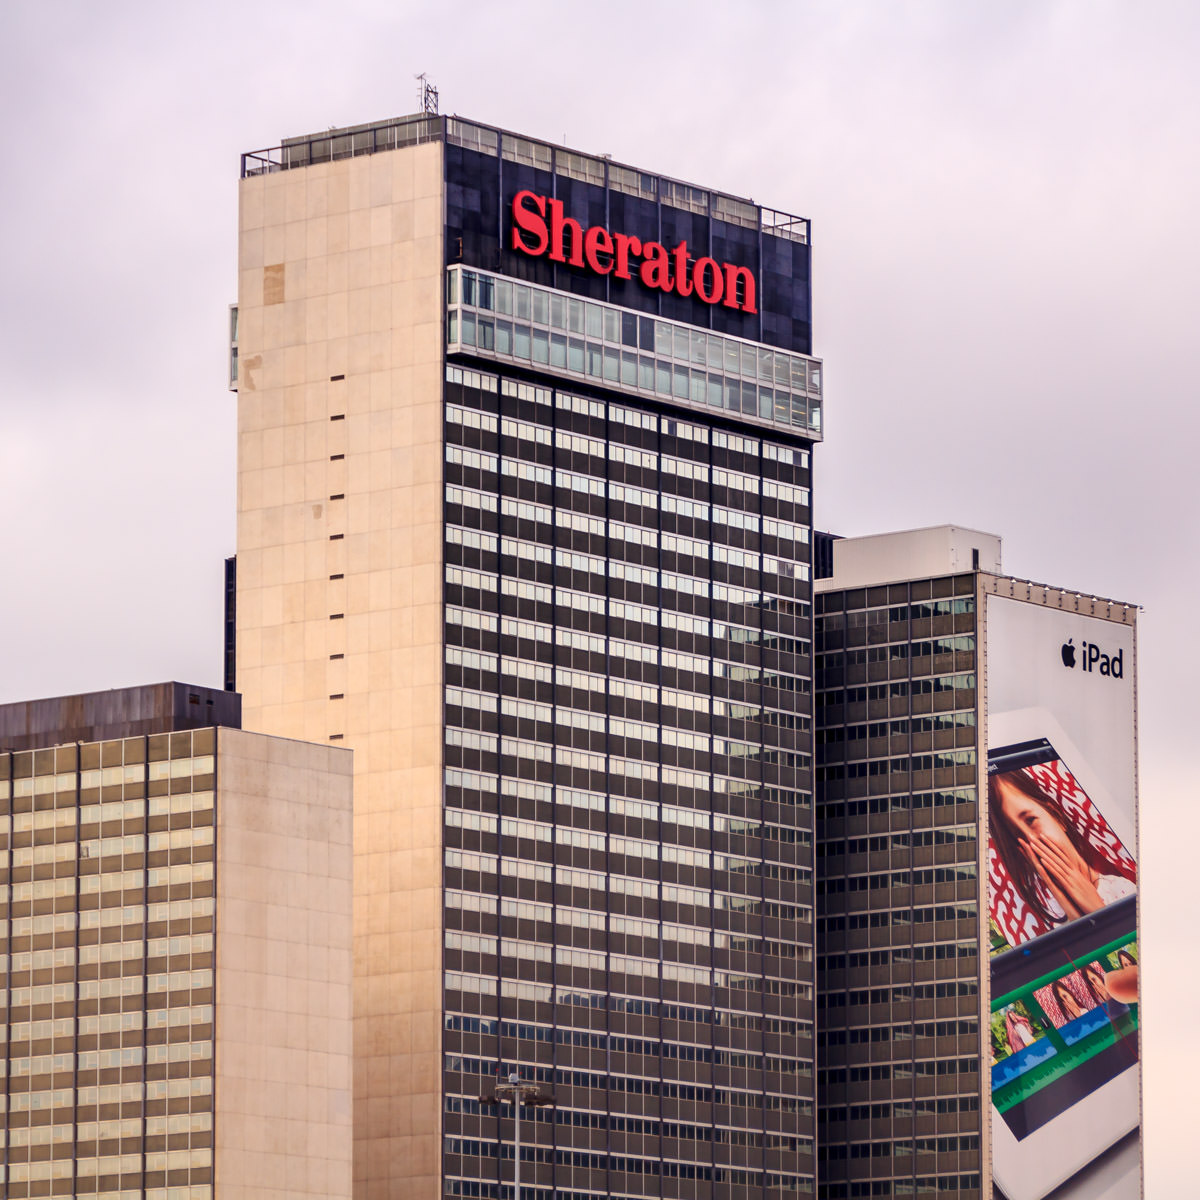 The Sheraton Hotel (formerly the Adams Mark) in Downtown Dallas.